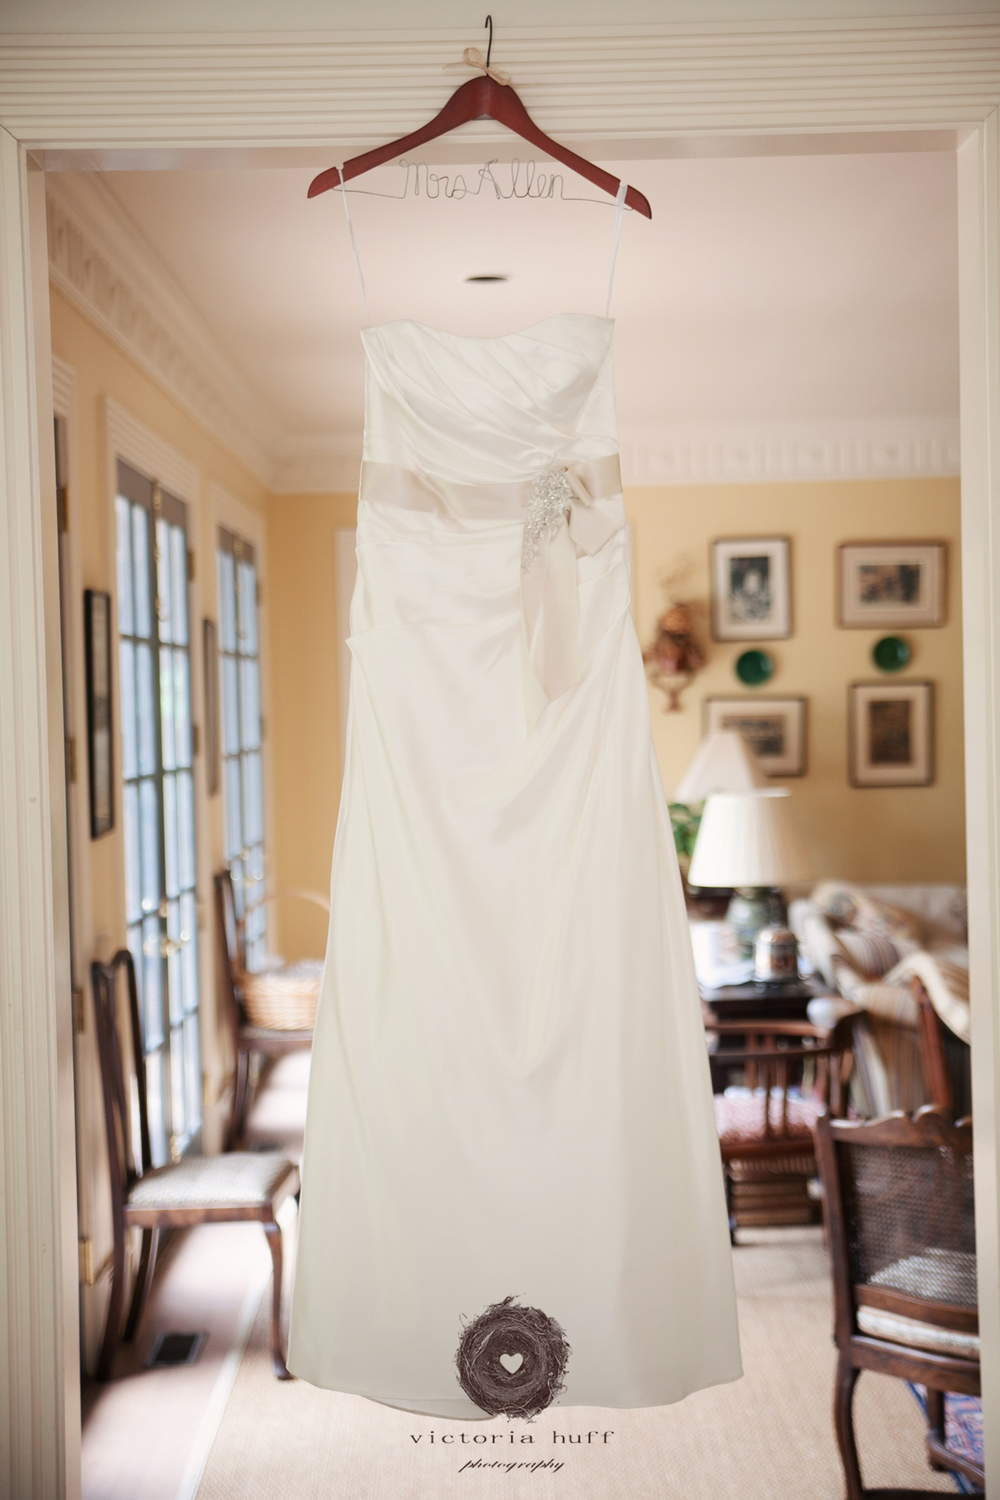 Wedding-Photography-Holly-Eisele-Clint-Allen-Athens-Georgia-Vintage-Wedding-dress-017.jpg